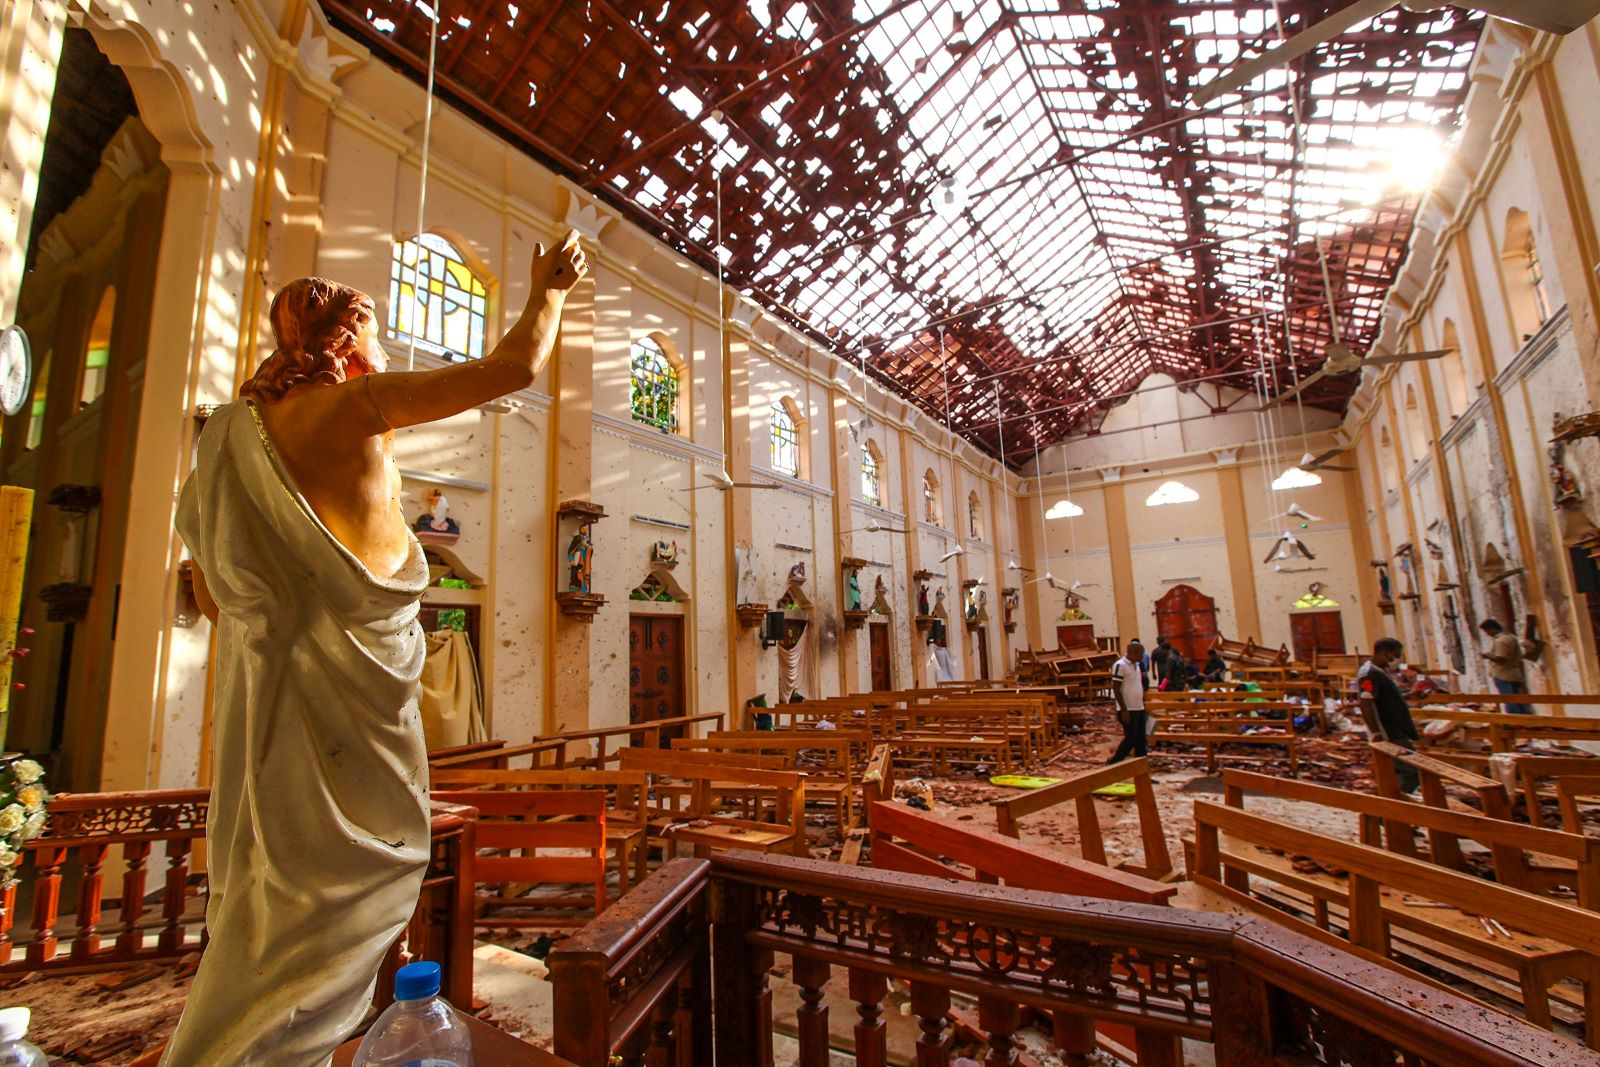 Officials inspect the damaged St. Sebastian's Church after co-ordinated explosions on April 21, 2019 in Negombo, north of Colombo, Sri Lanka. (Photo: Stringer/Getty)